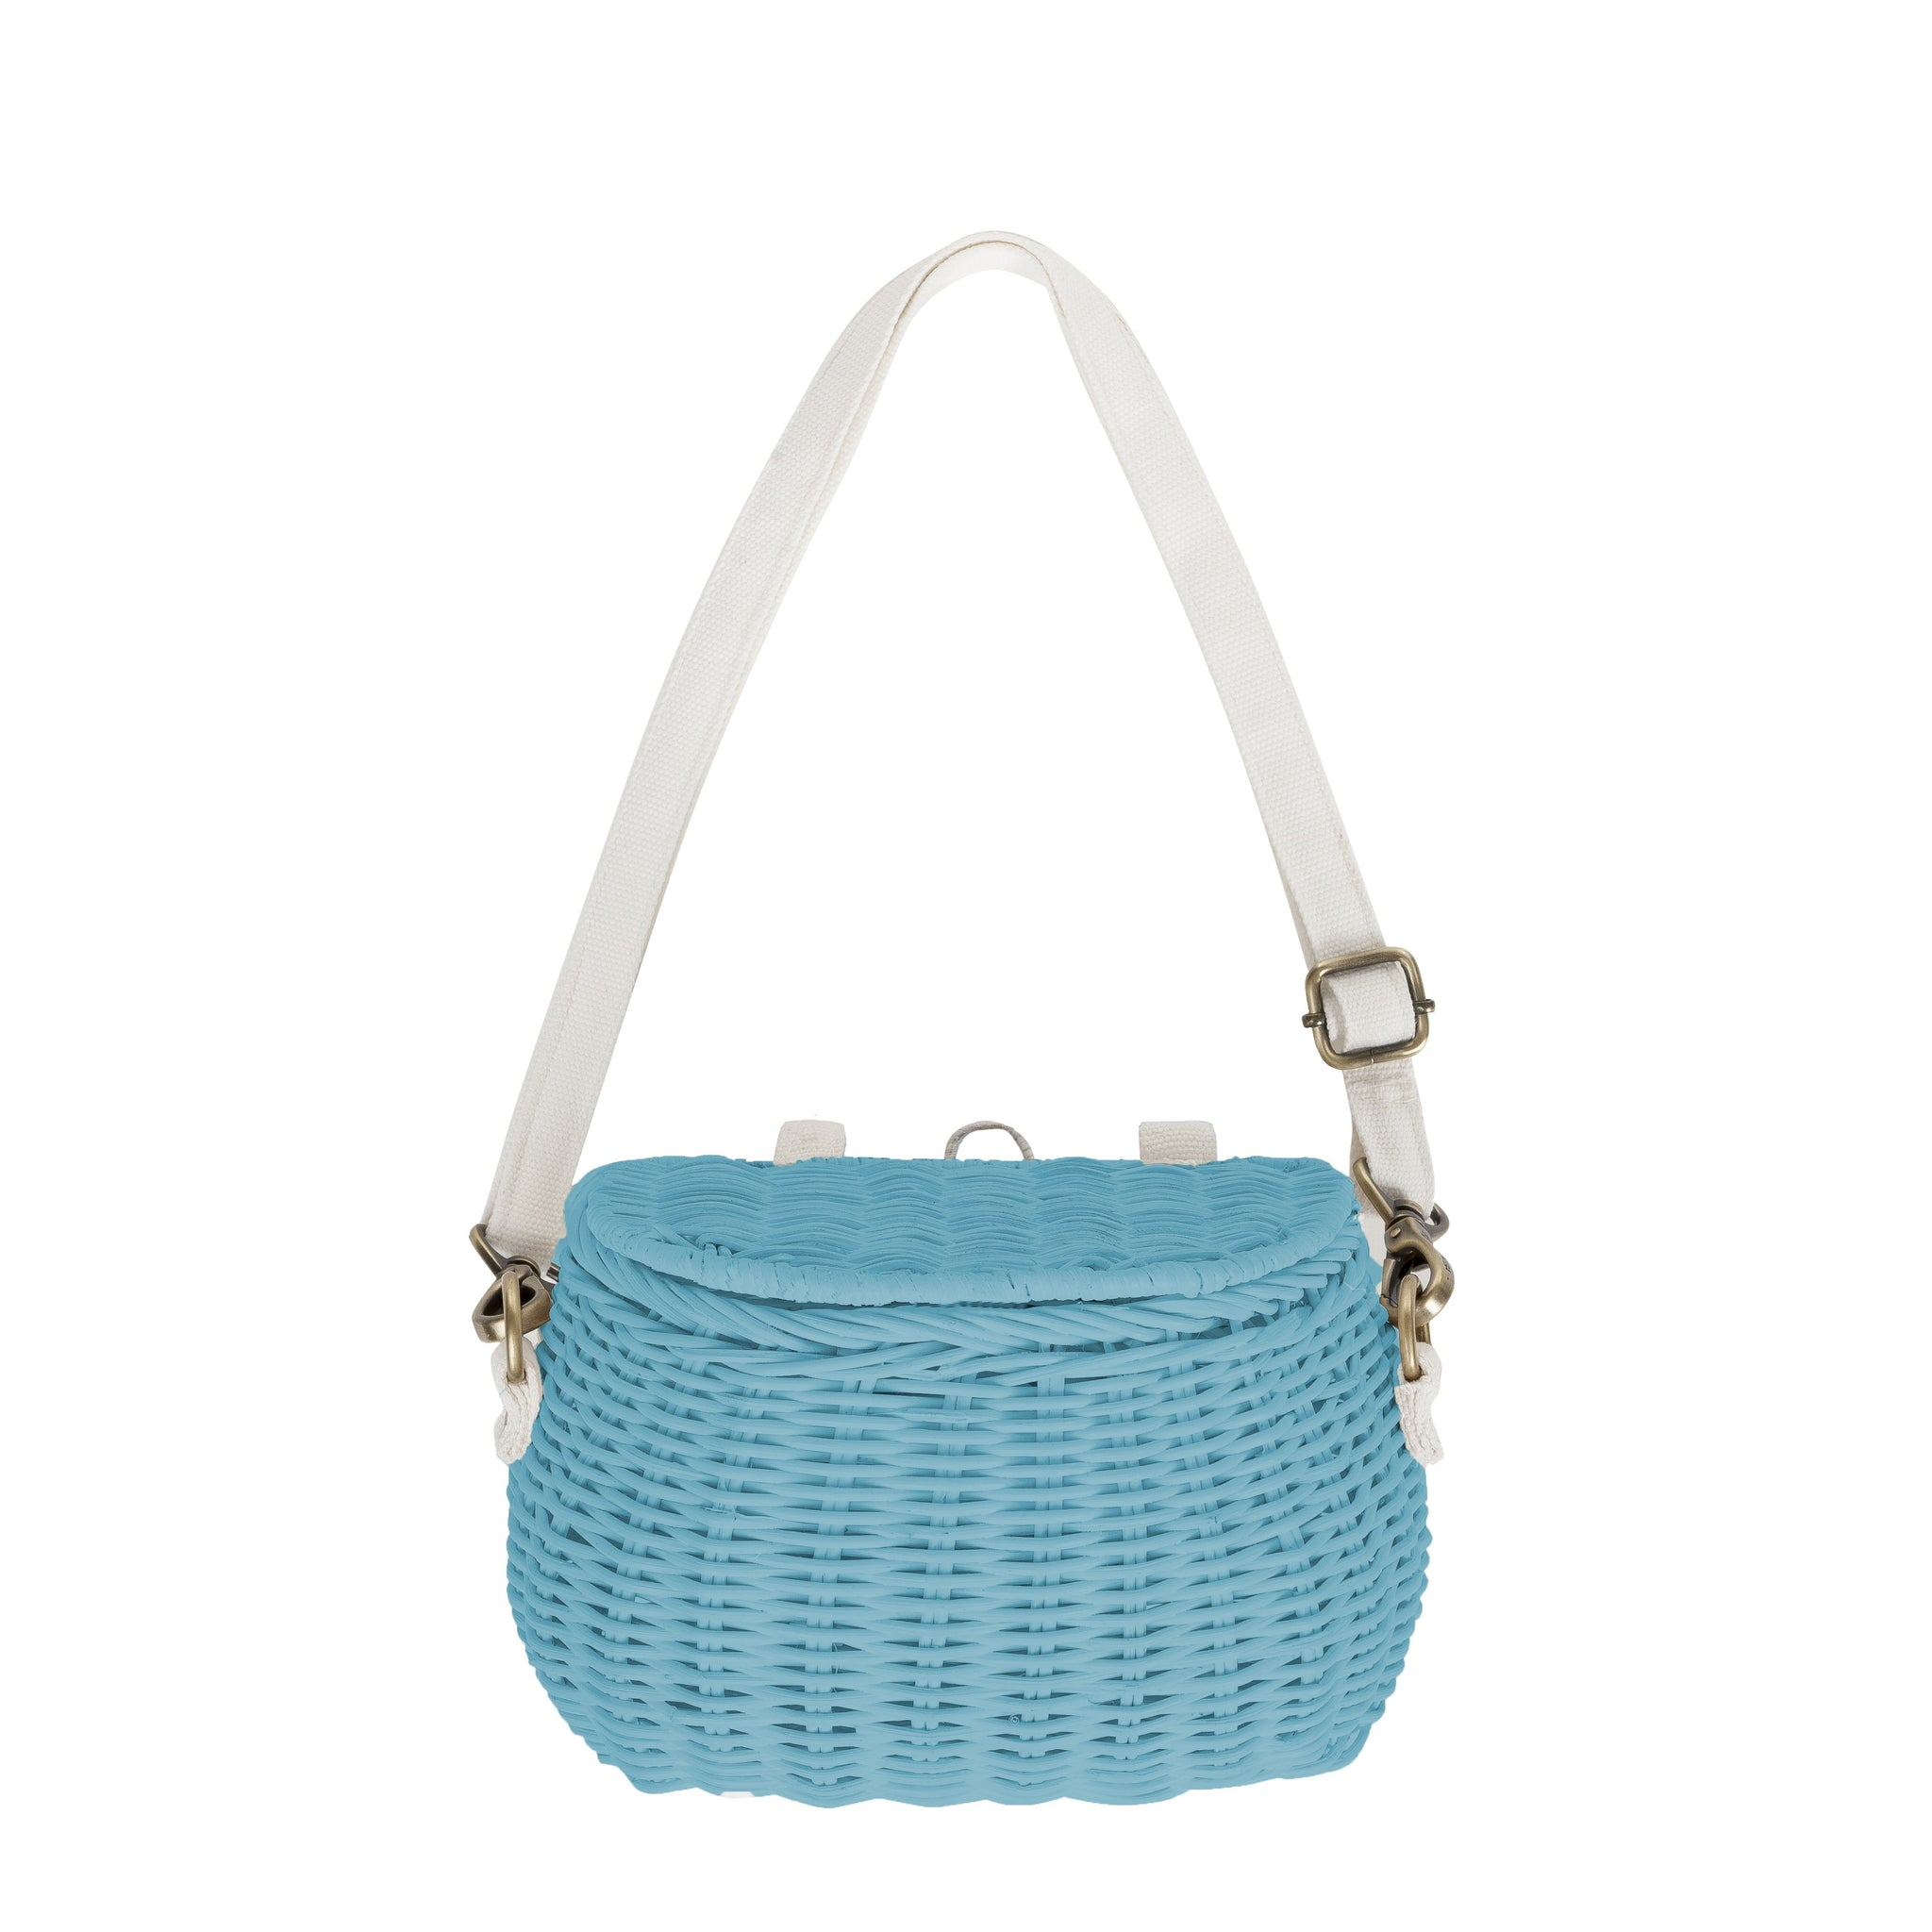 Olli Ella Mini Chari Bag - Blue